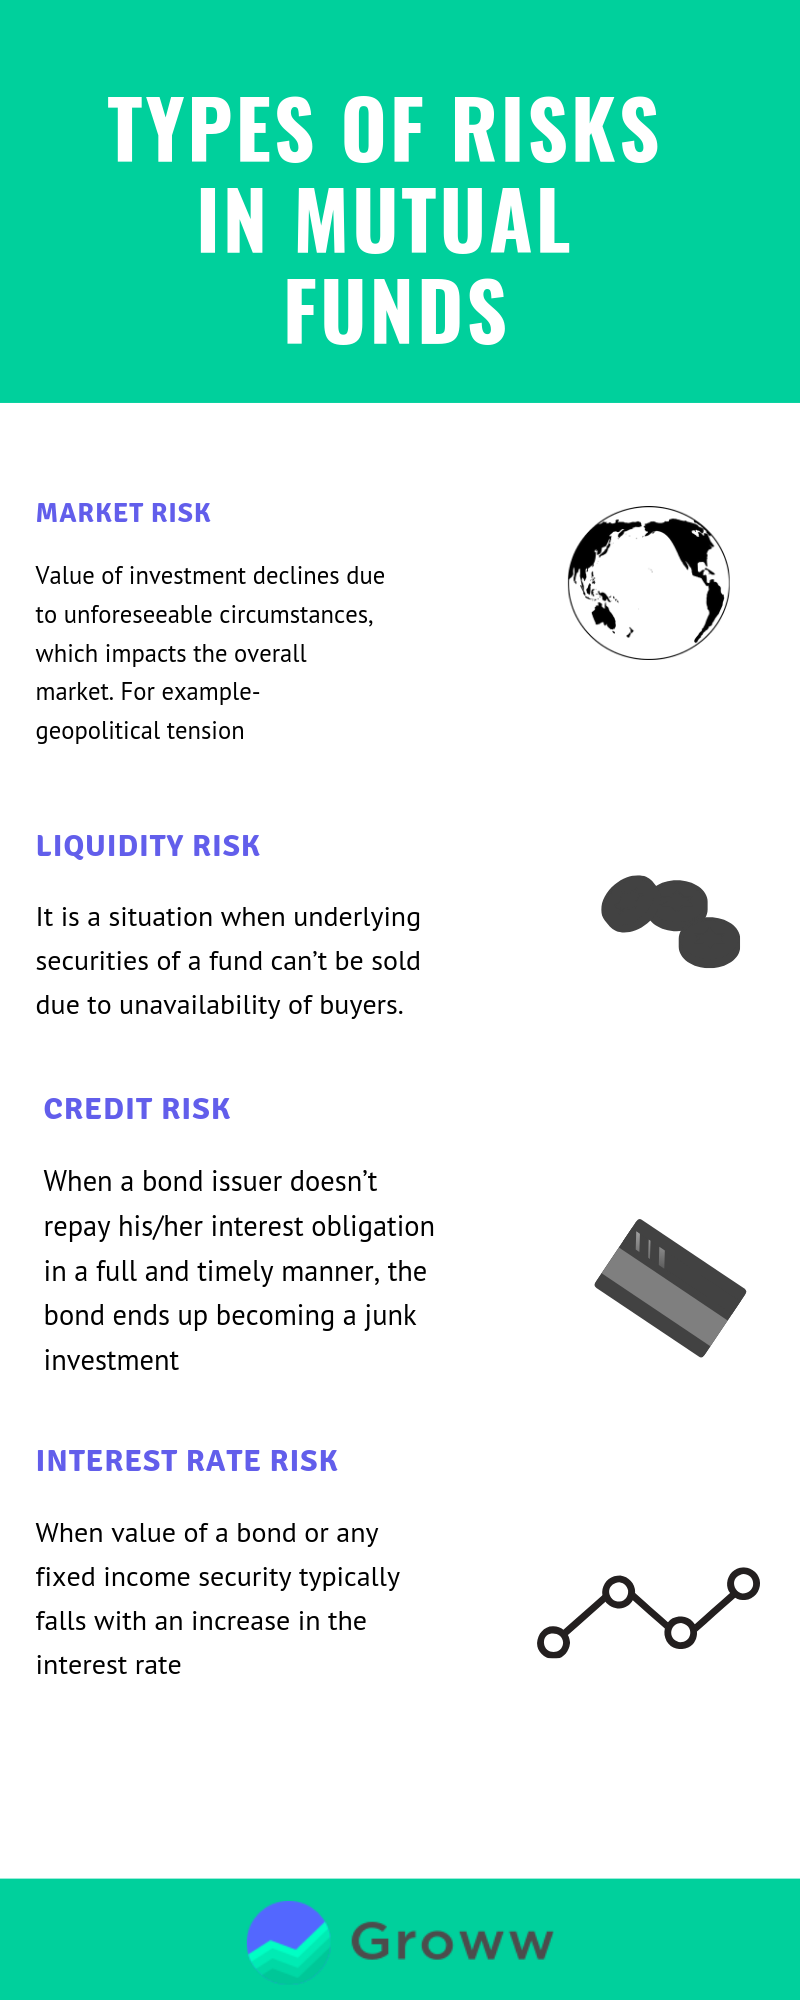 Risks in mutual funds